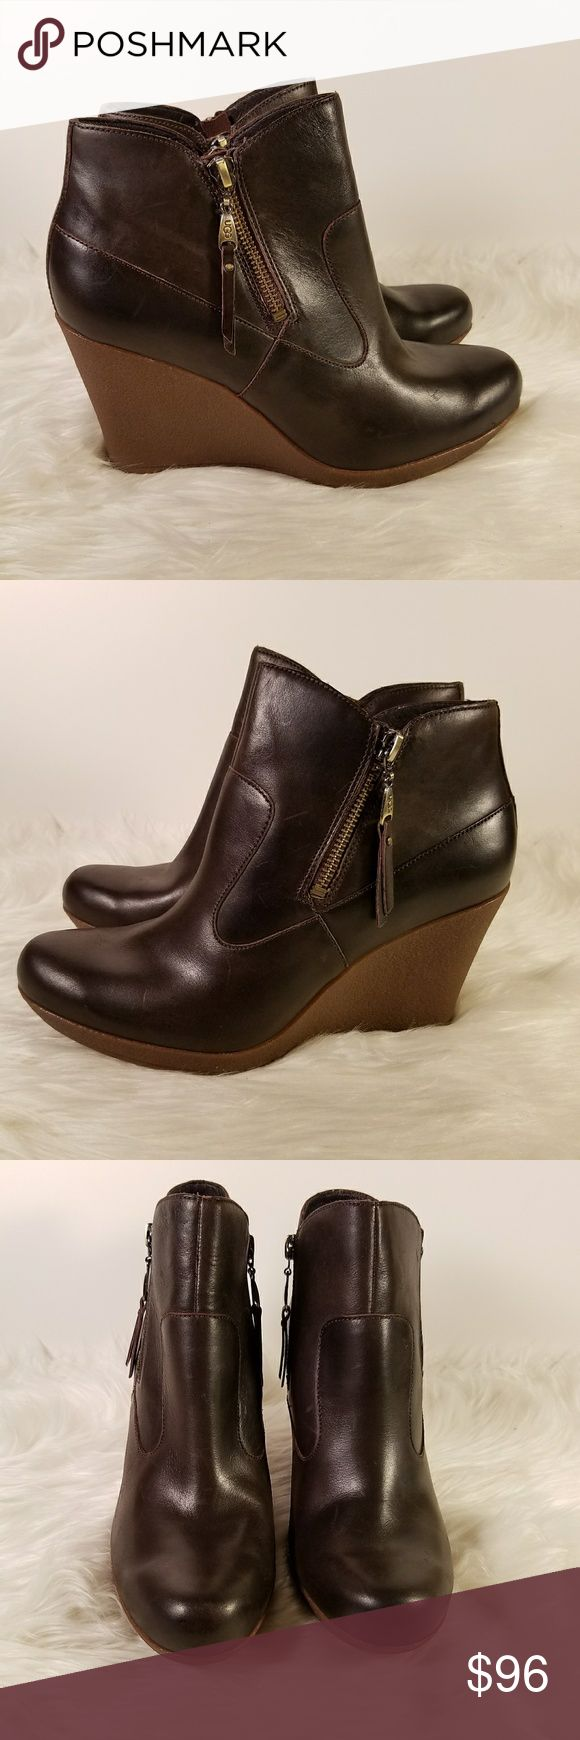 """NWOB Ugg Meredith Leather Wedge Booties This is a pair of Ugg Meredith leather wedge booties.  Features:  - leather uppers with approx. 5"""" shaft  - rubber 3 1/2"""" wedge heel and sole  - zippers on both sides  - wool insole  - rounded toe  New, unworn boots without box or retail tags  6txxbggd/ge UGG Shoes Ankle Boots & Booties"""